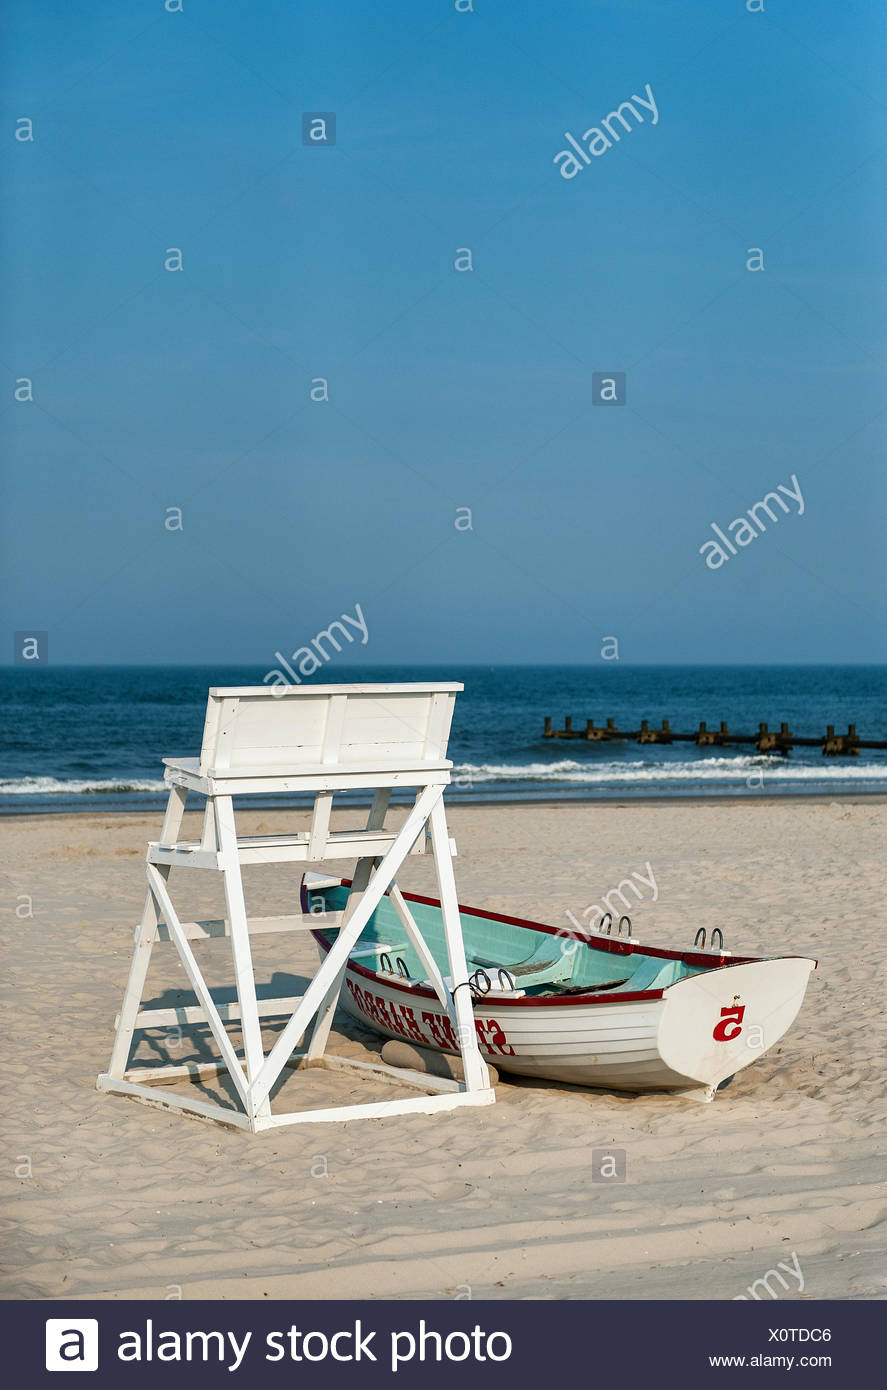 Lifegaurd stand and rescue boat on beach, Stone Harbor, New Jersey, USA - Stock Image